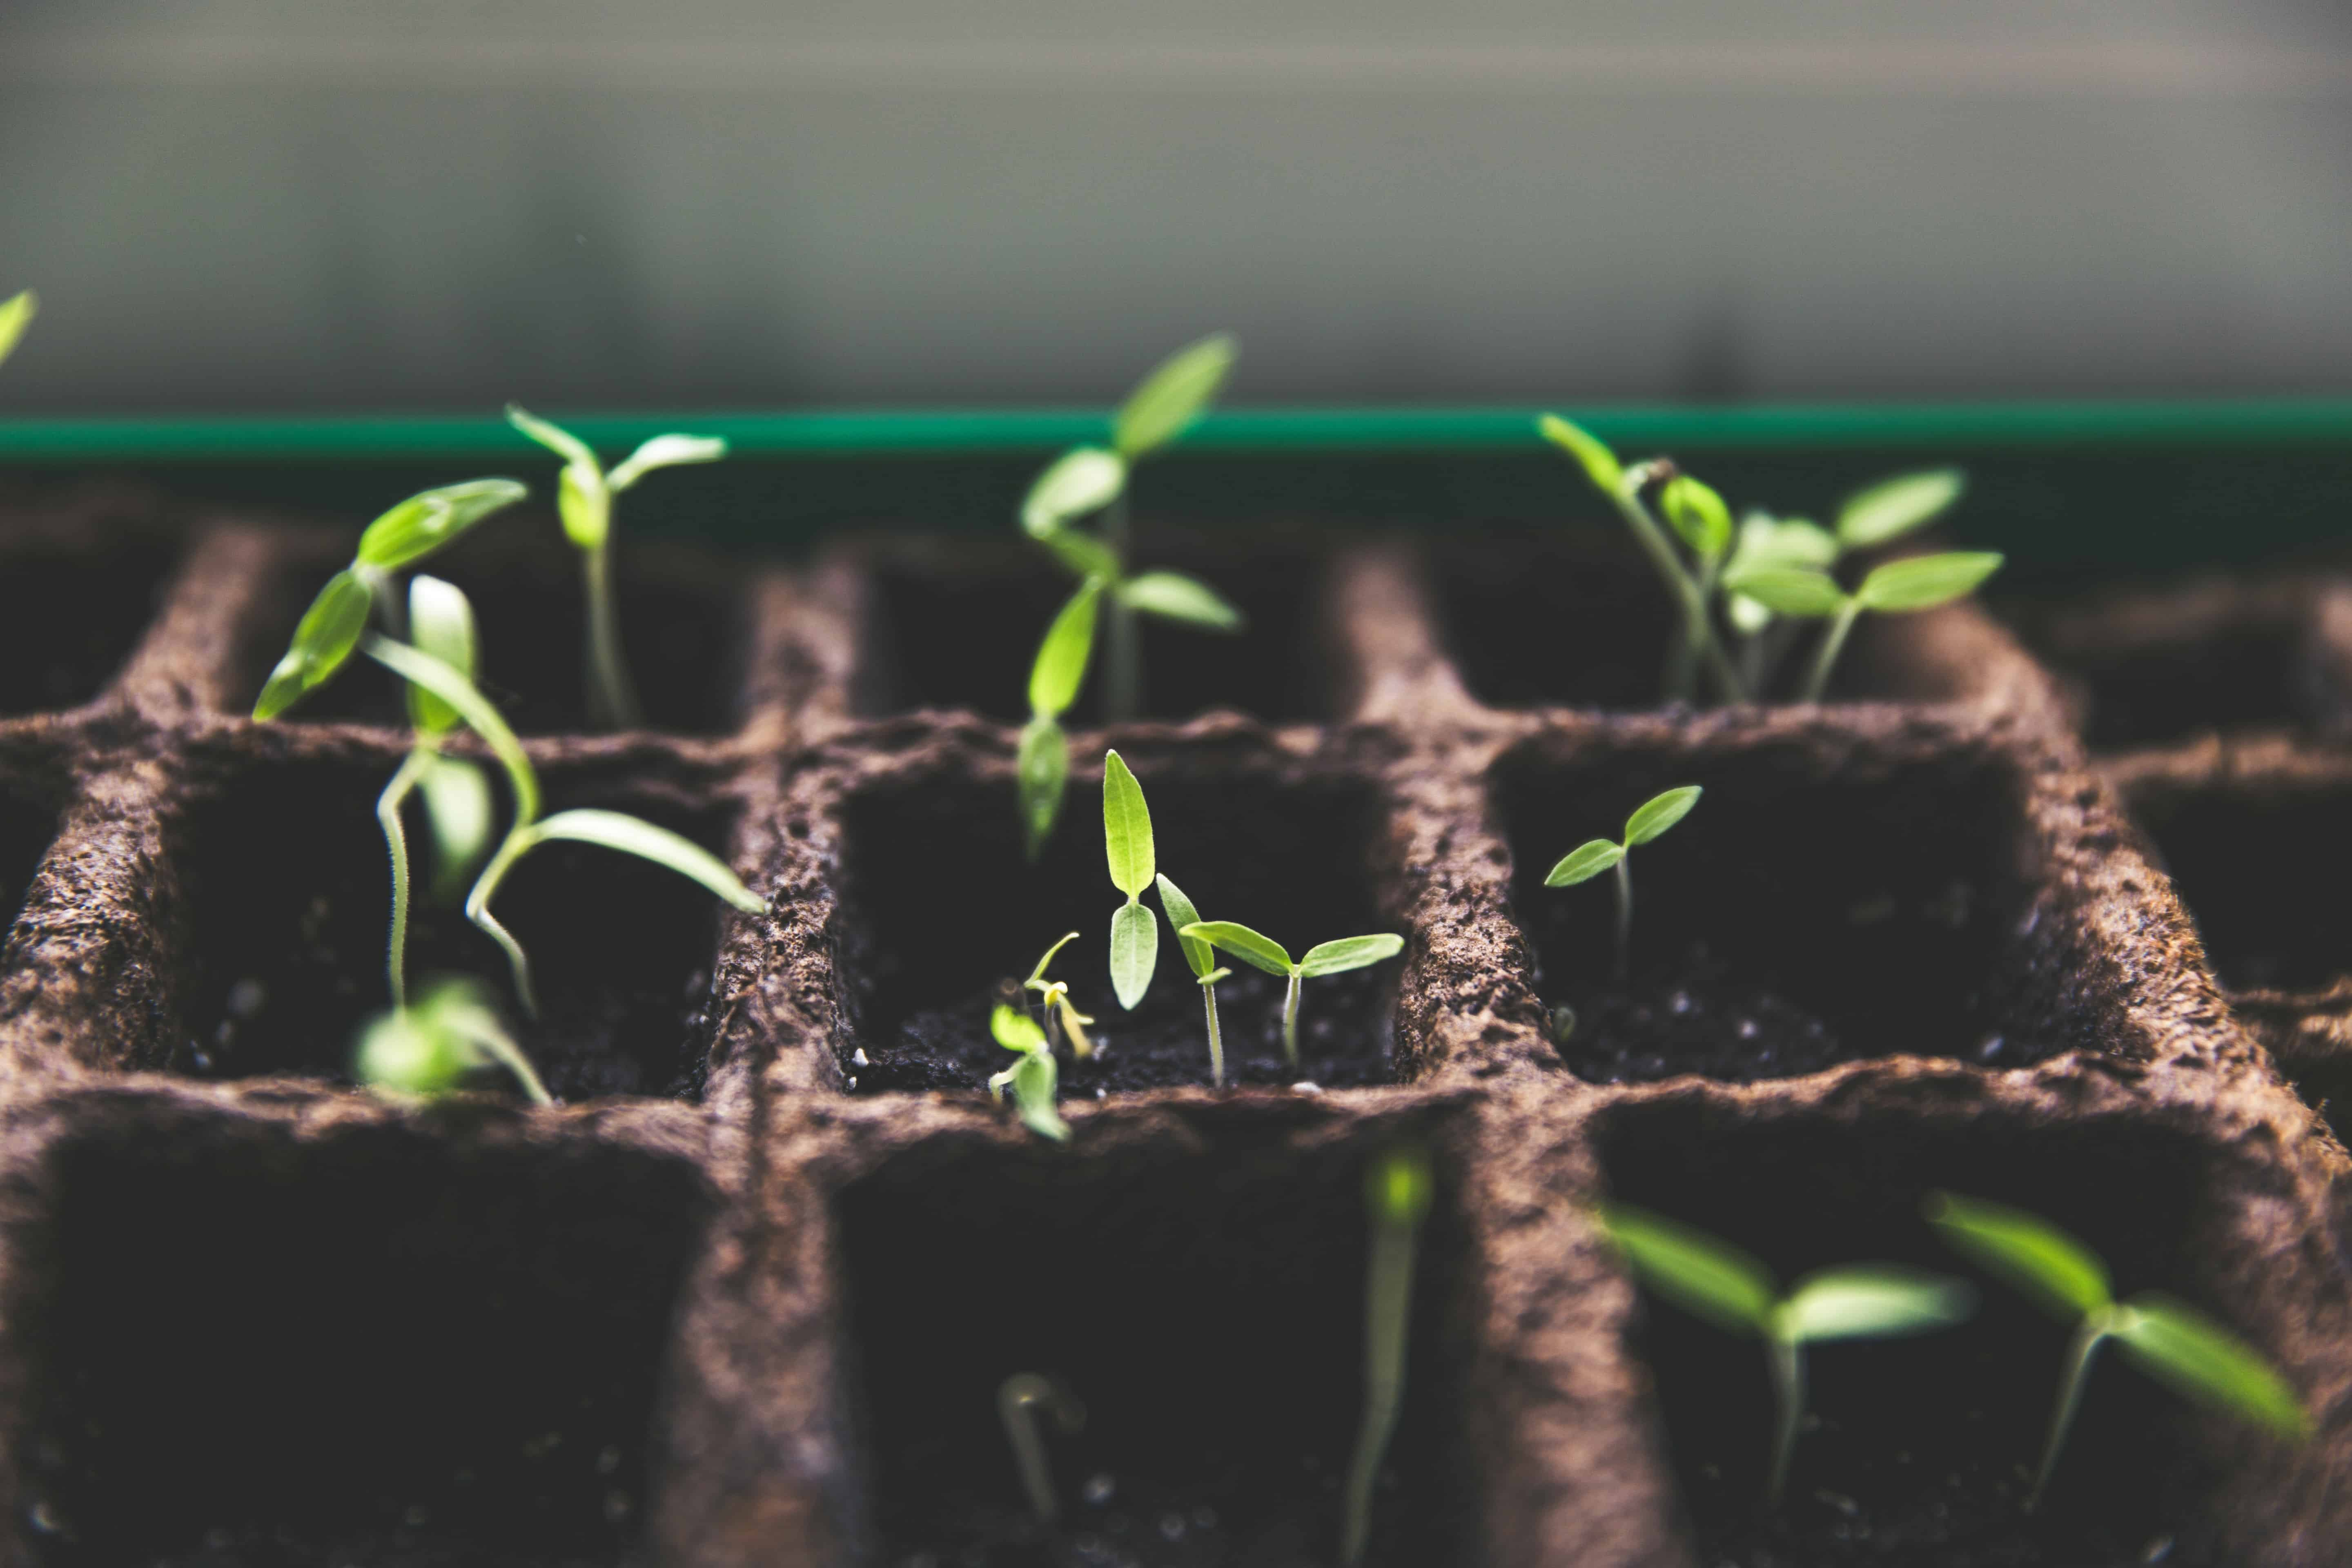 The fresh start of spring and all it's beauty can explain how psychotherapy works: opportunities for positive growth, self-exploration, and self-discovery. Getting ahead of the weeds with gardening and growth opportunities.